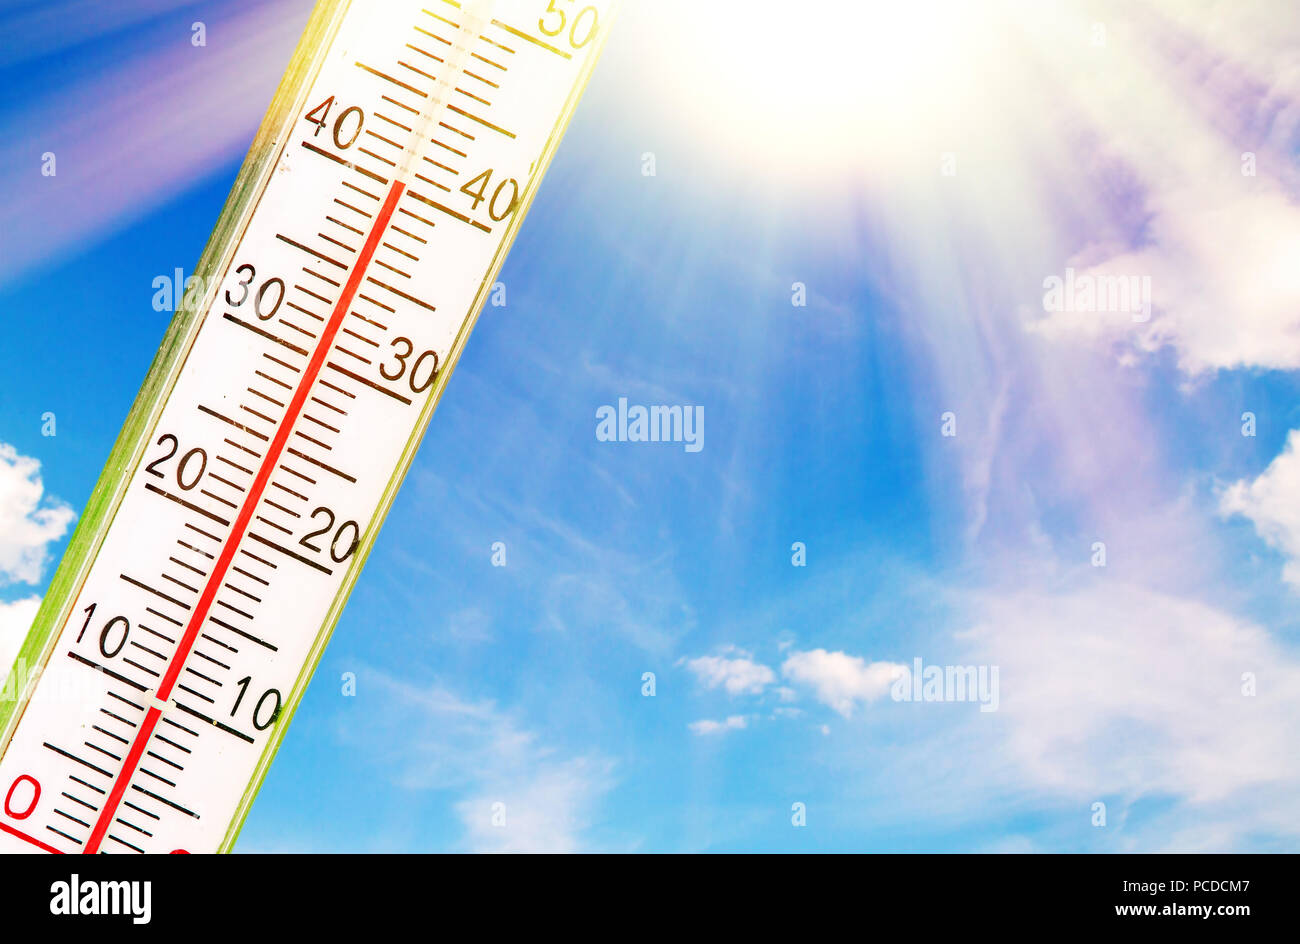 Very hot day - Stock Image